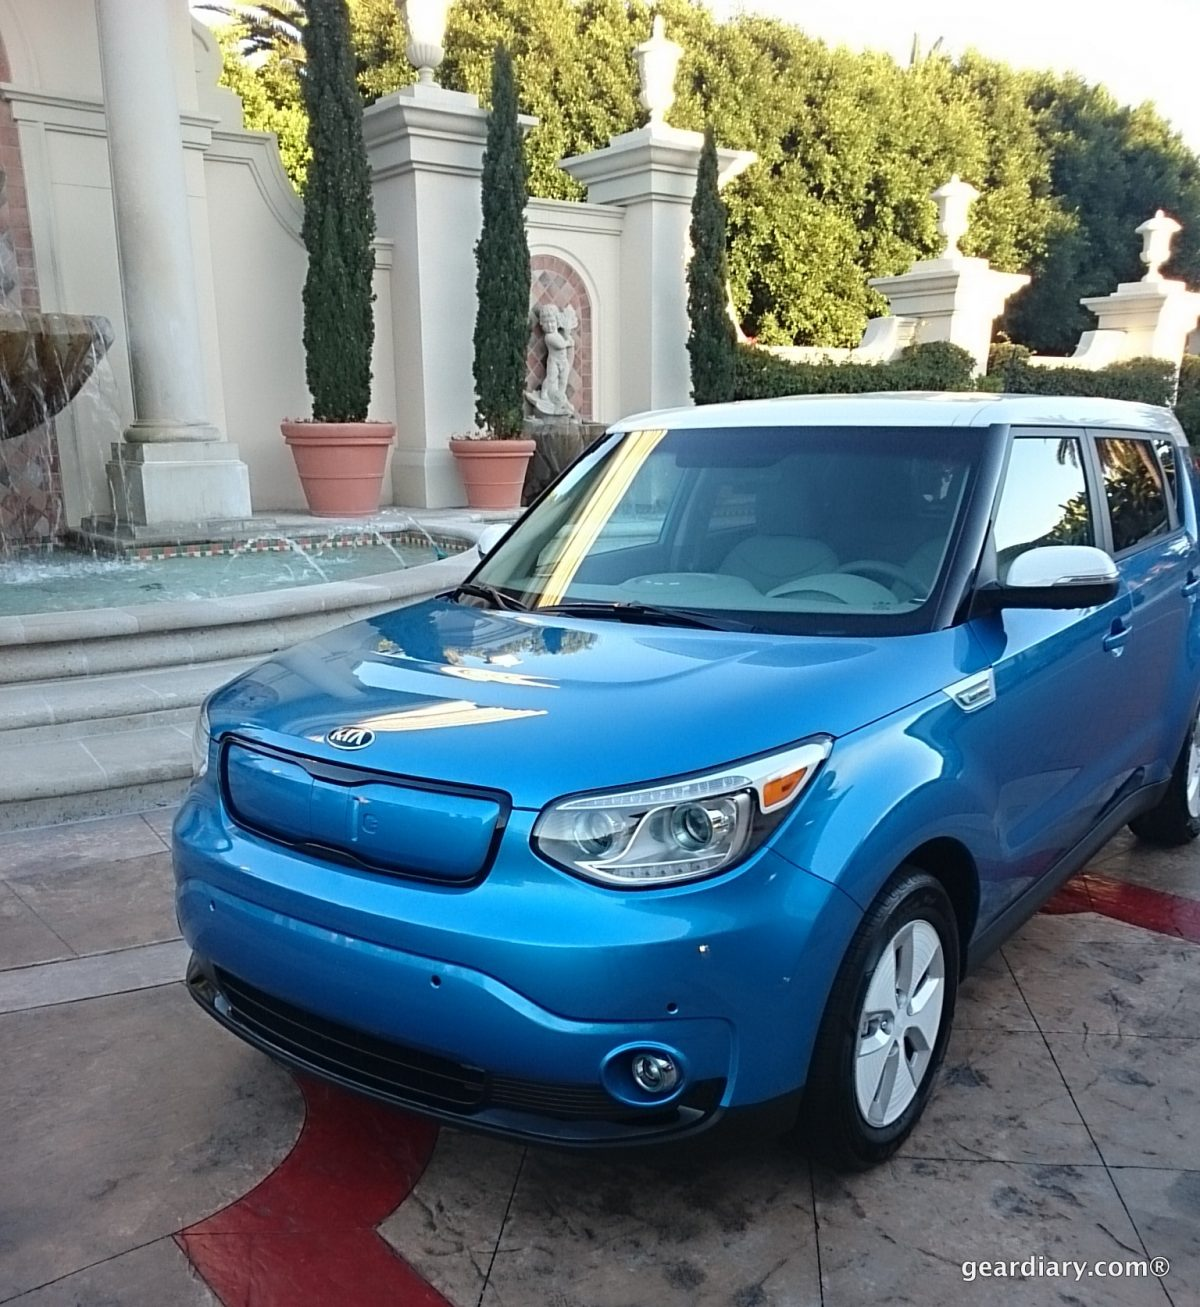 Gear Diary 2015 Kia Soul EV Electric Vehicle Eco.26?ssl=1 2015 kia soul ev 100 miles of electric vehicle style \u2022 geardiary  at readyjetset.co